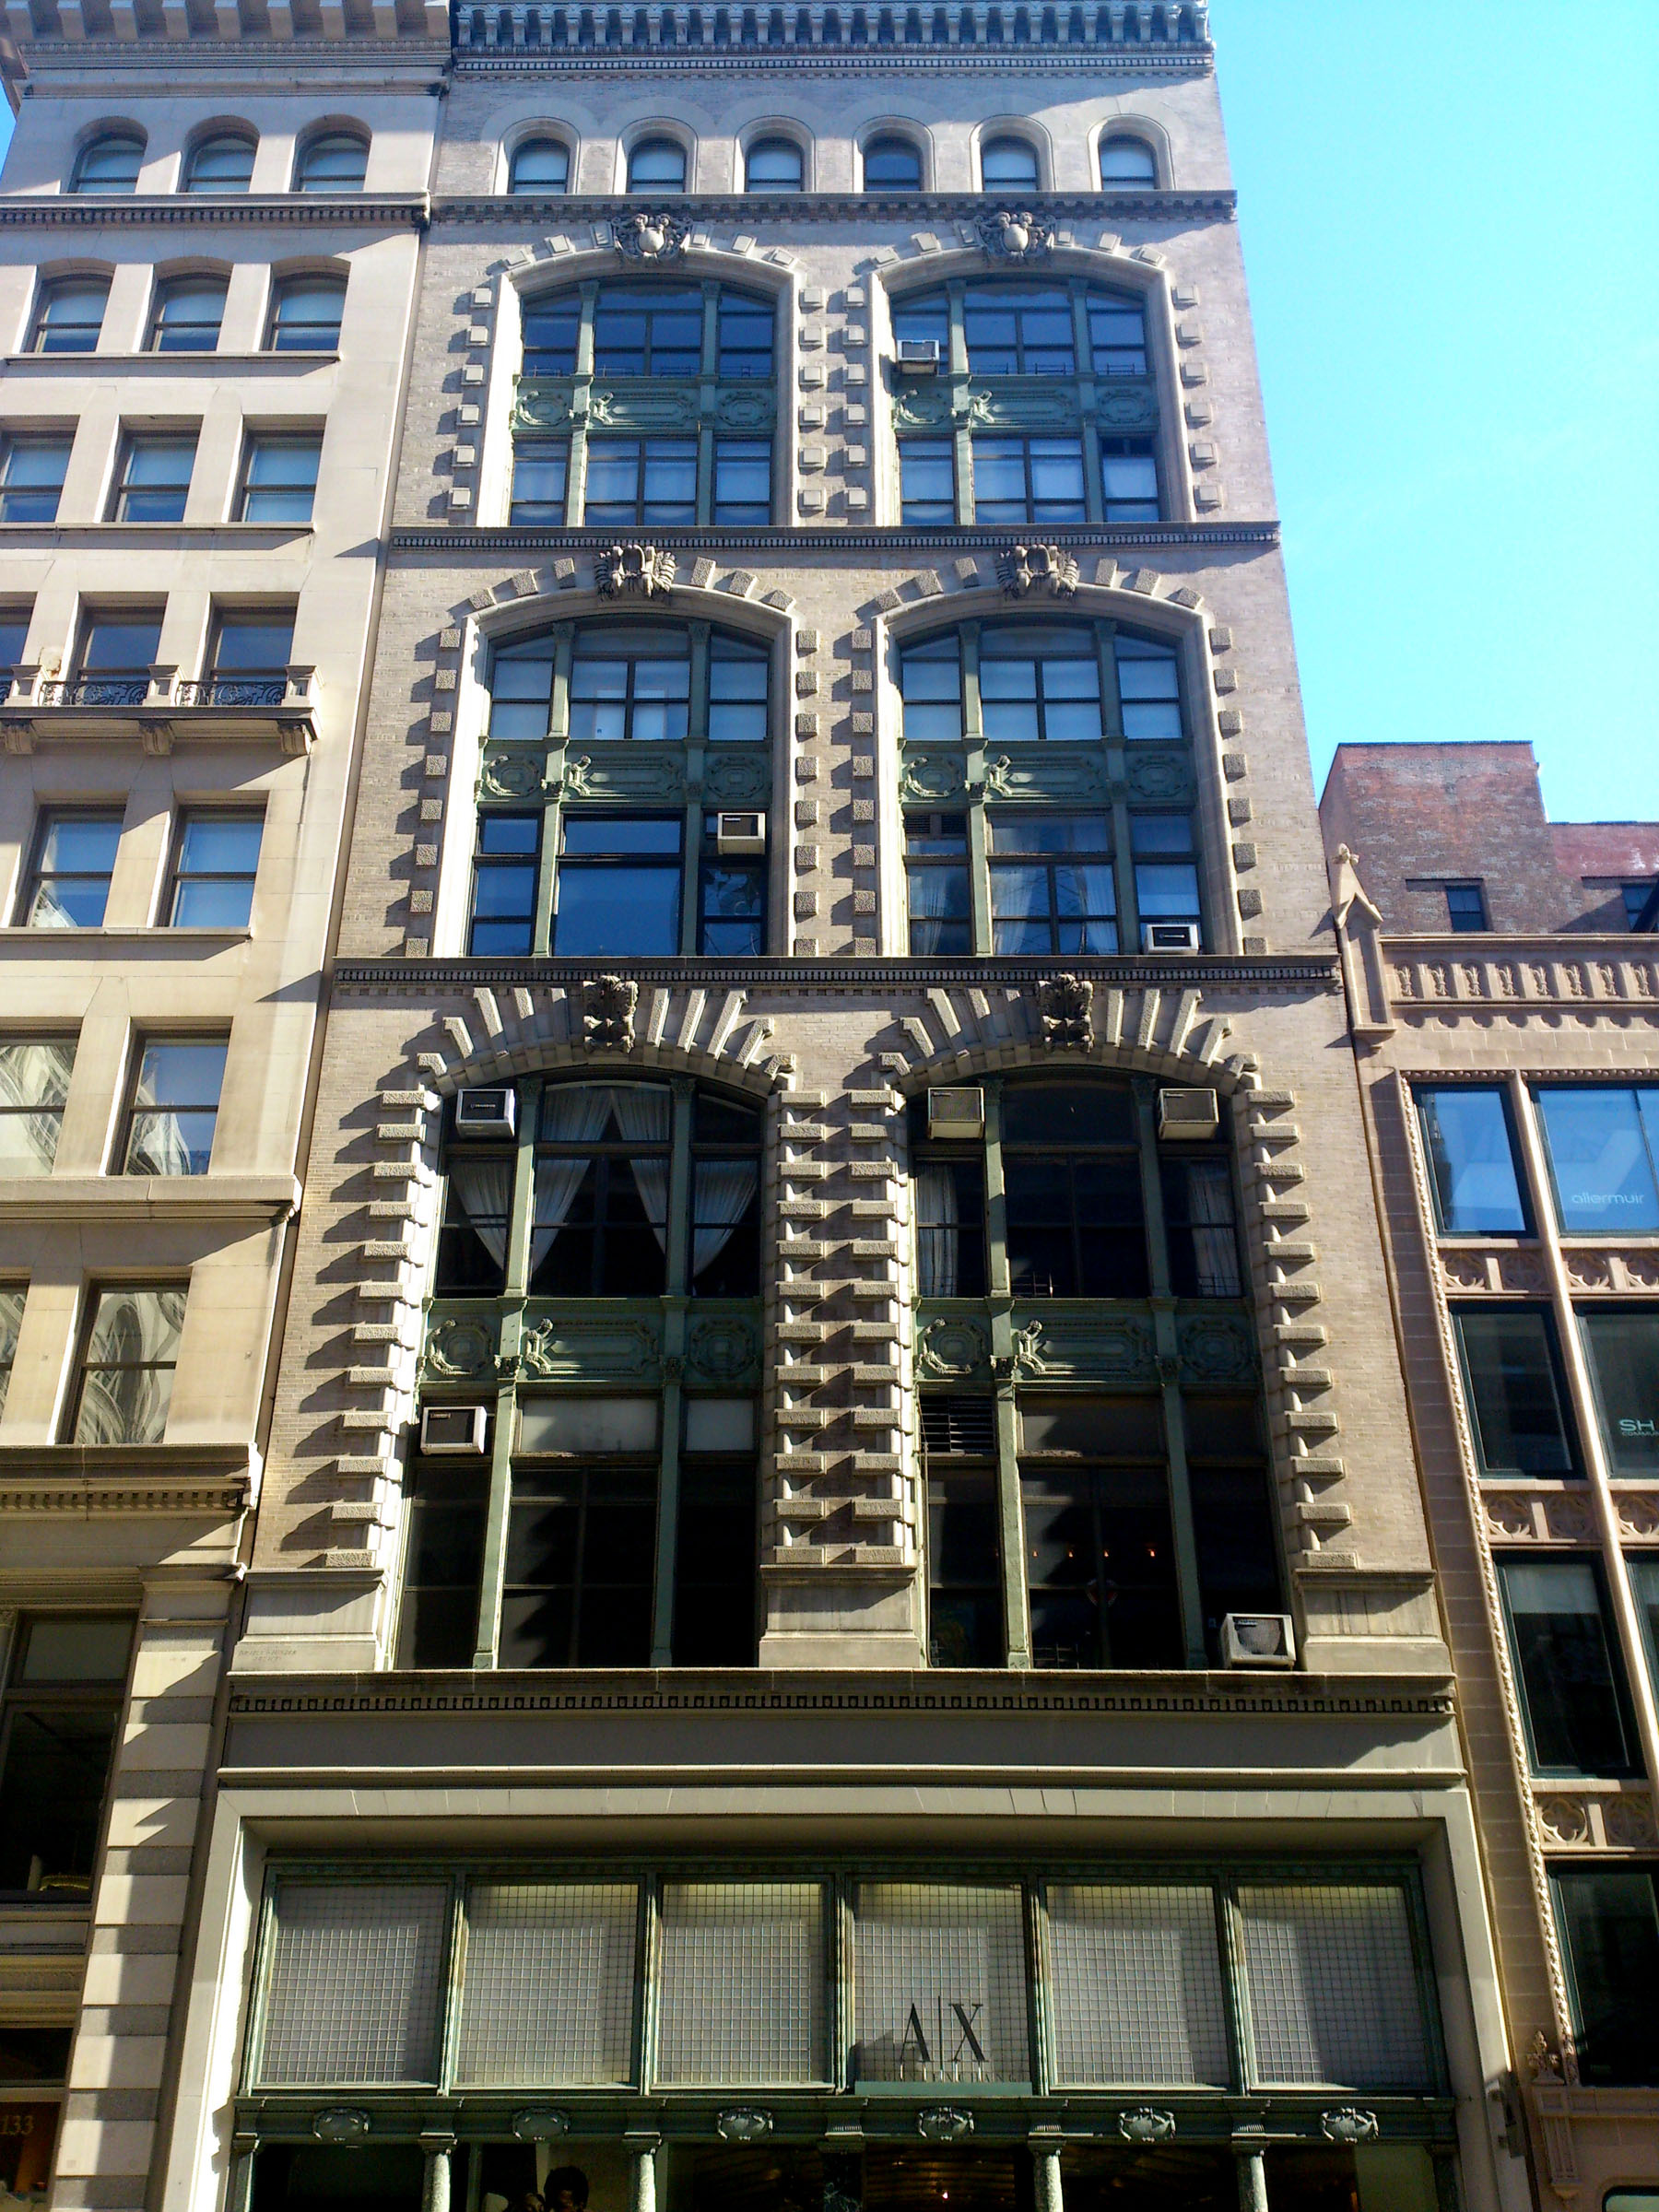 127 129 fifth avenue is an unusual beaux arts design for 130 william street 5th floor